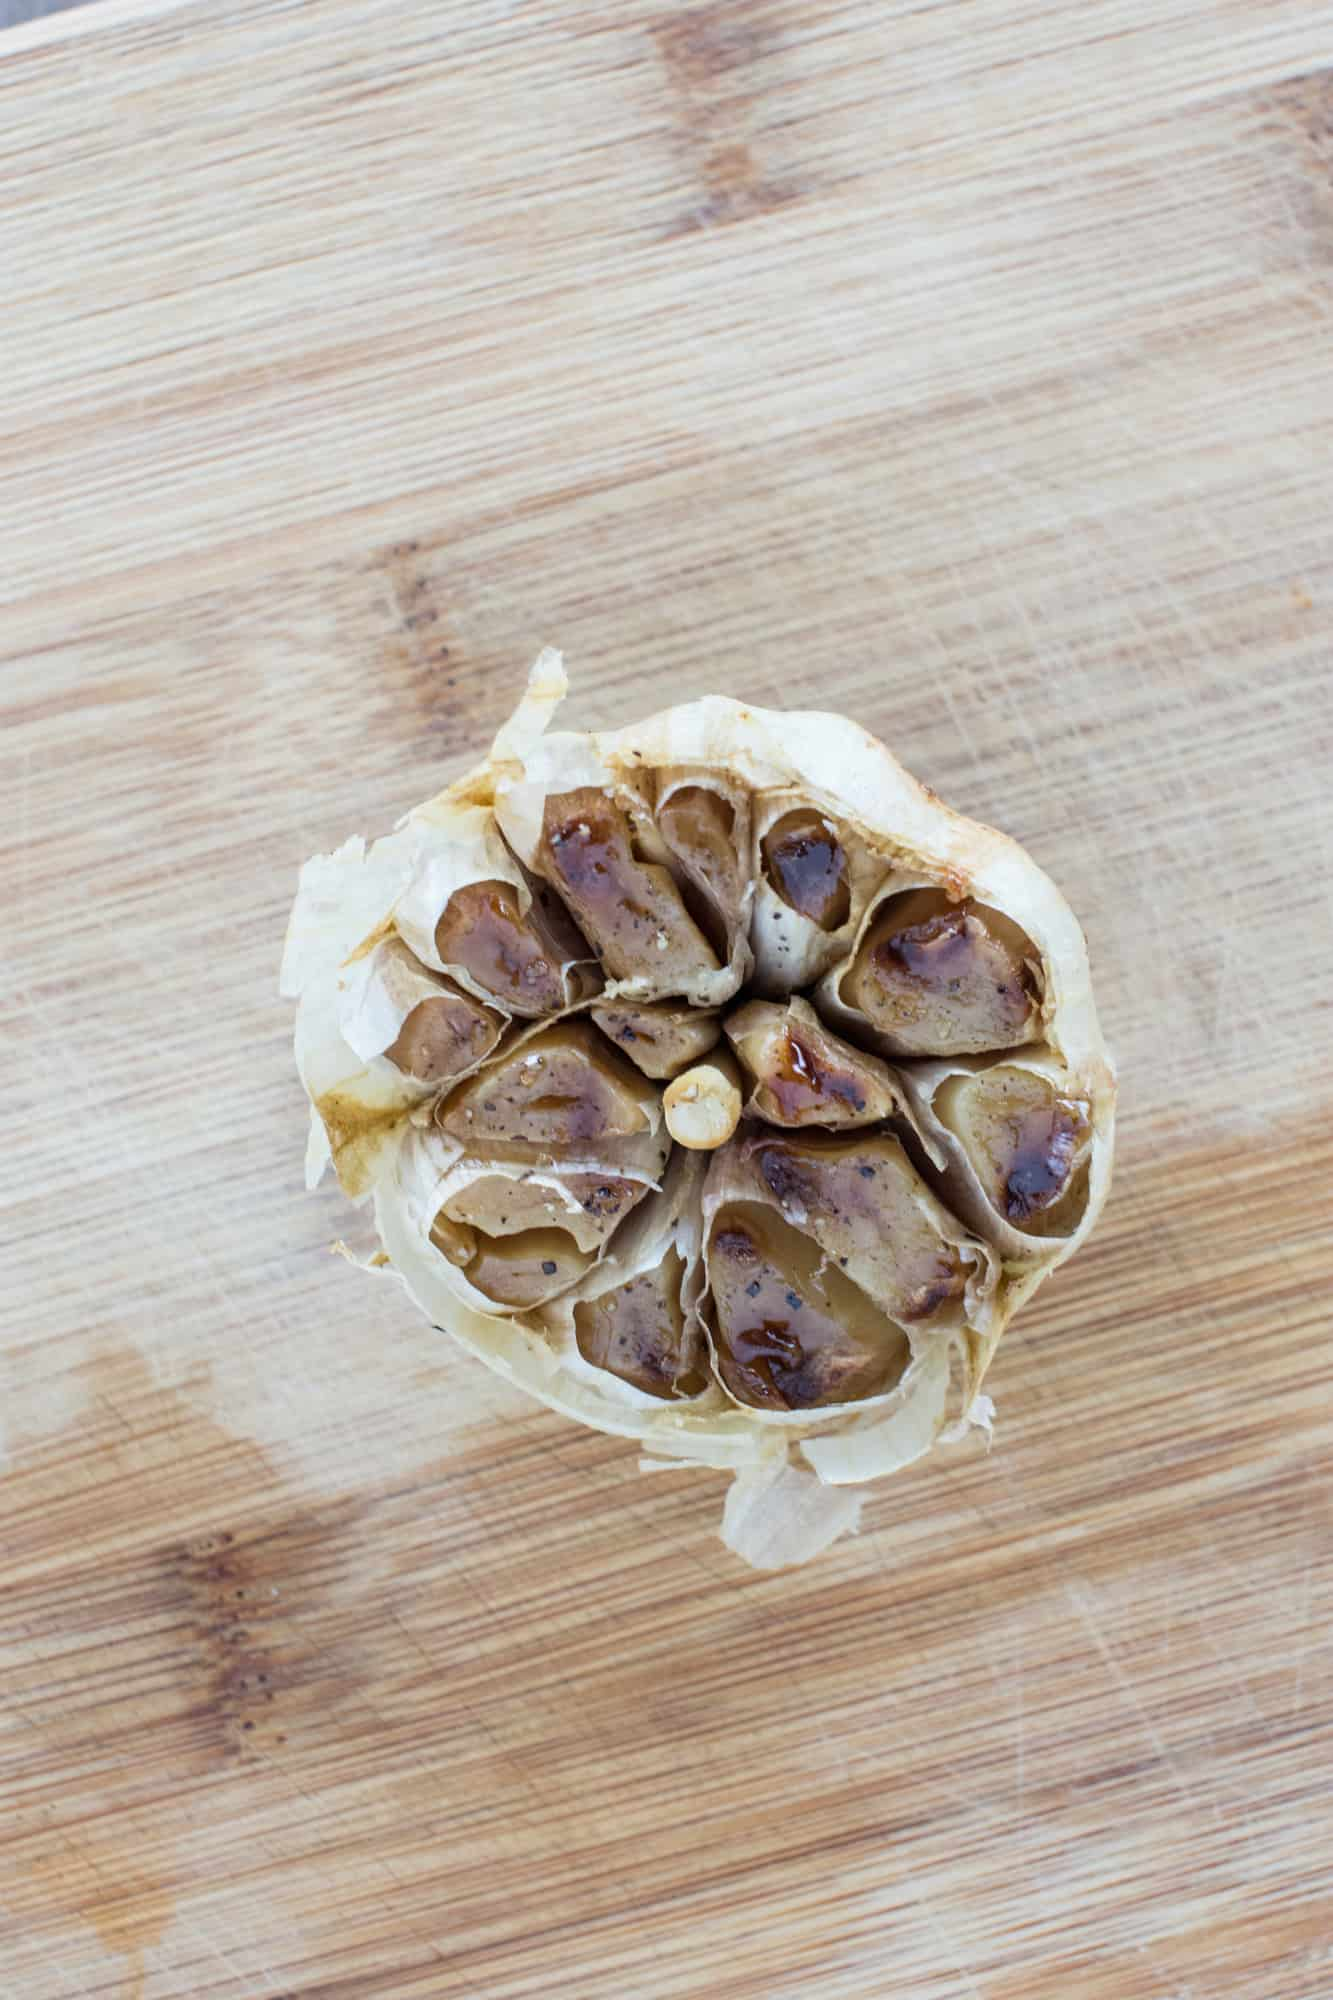 garlic bulb on wooden board after roasting